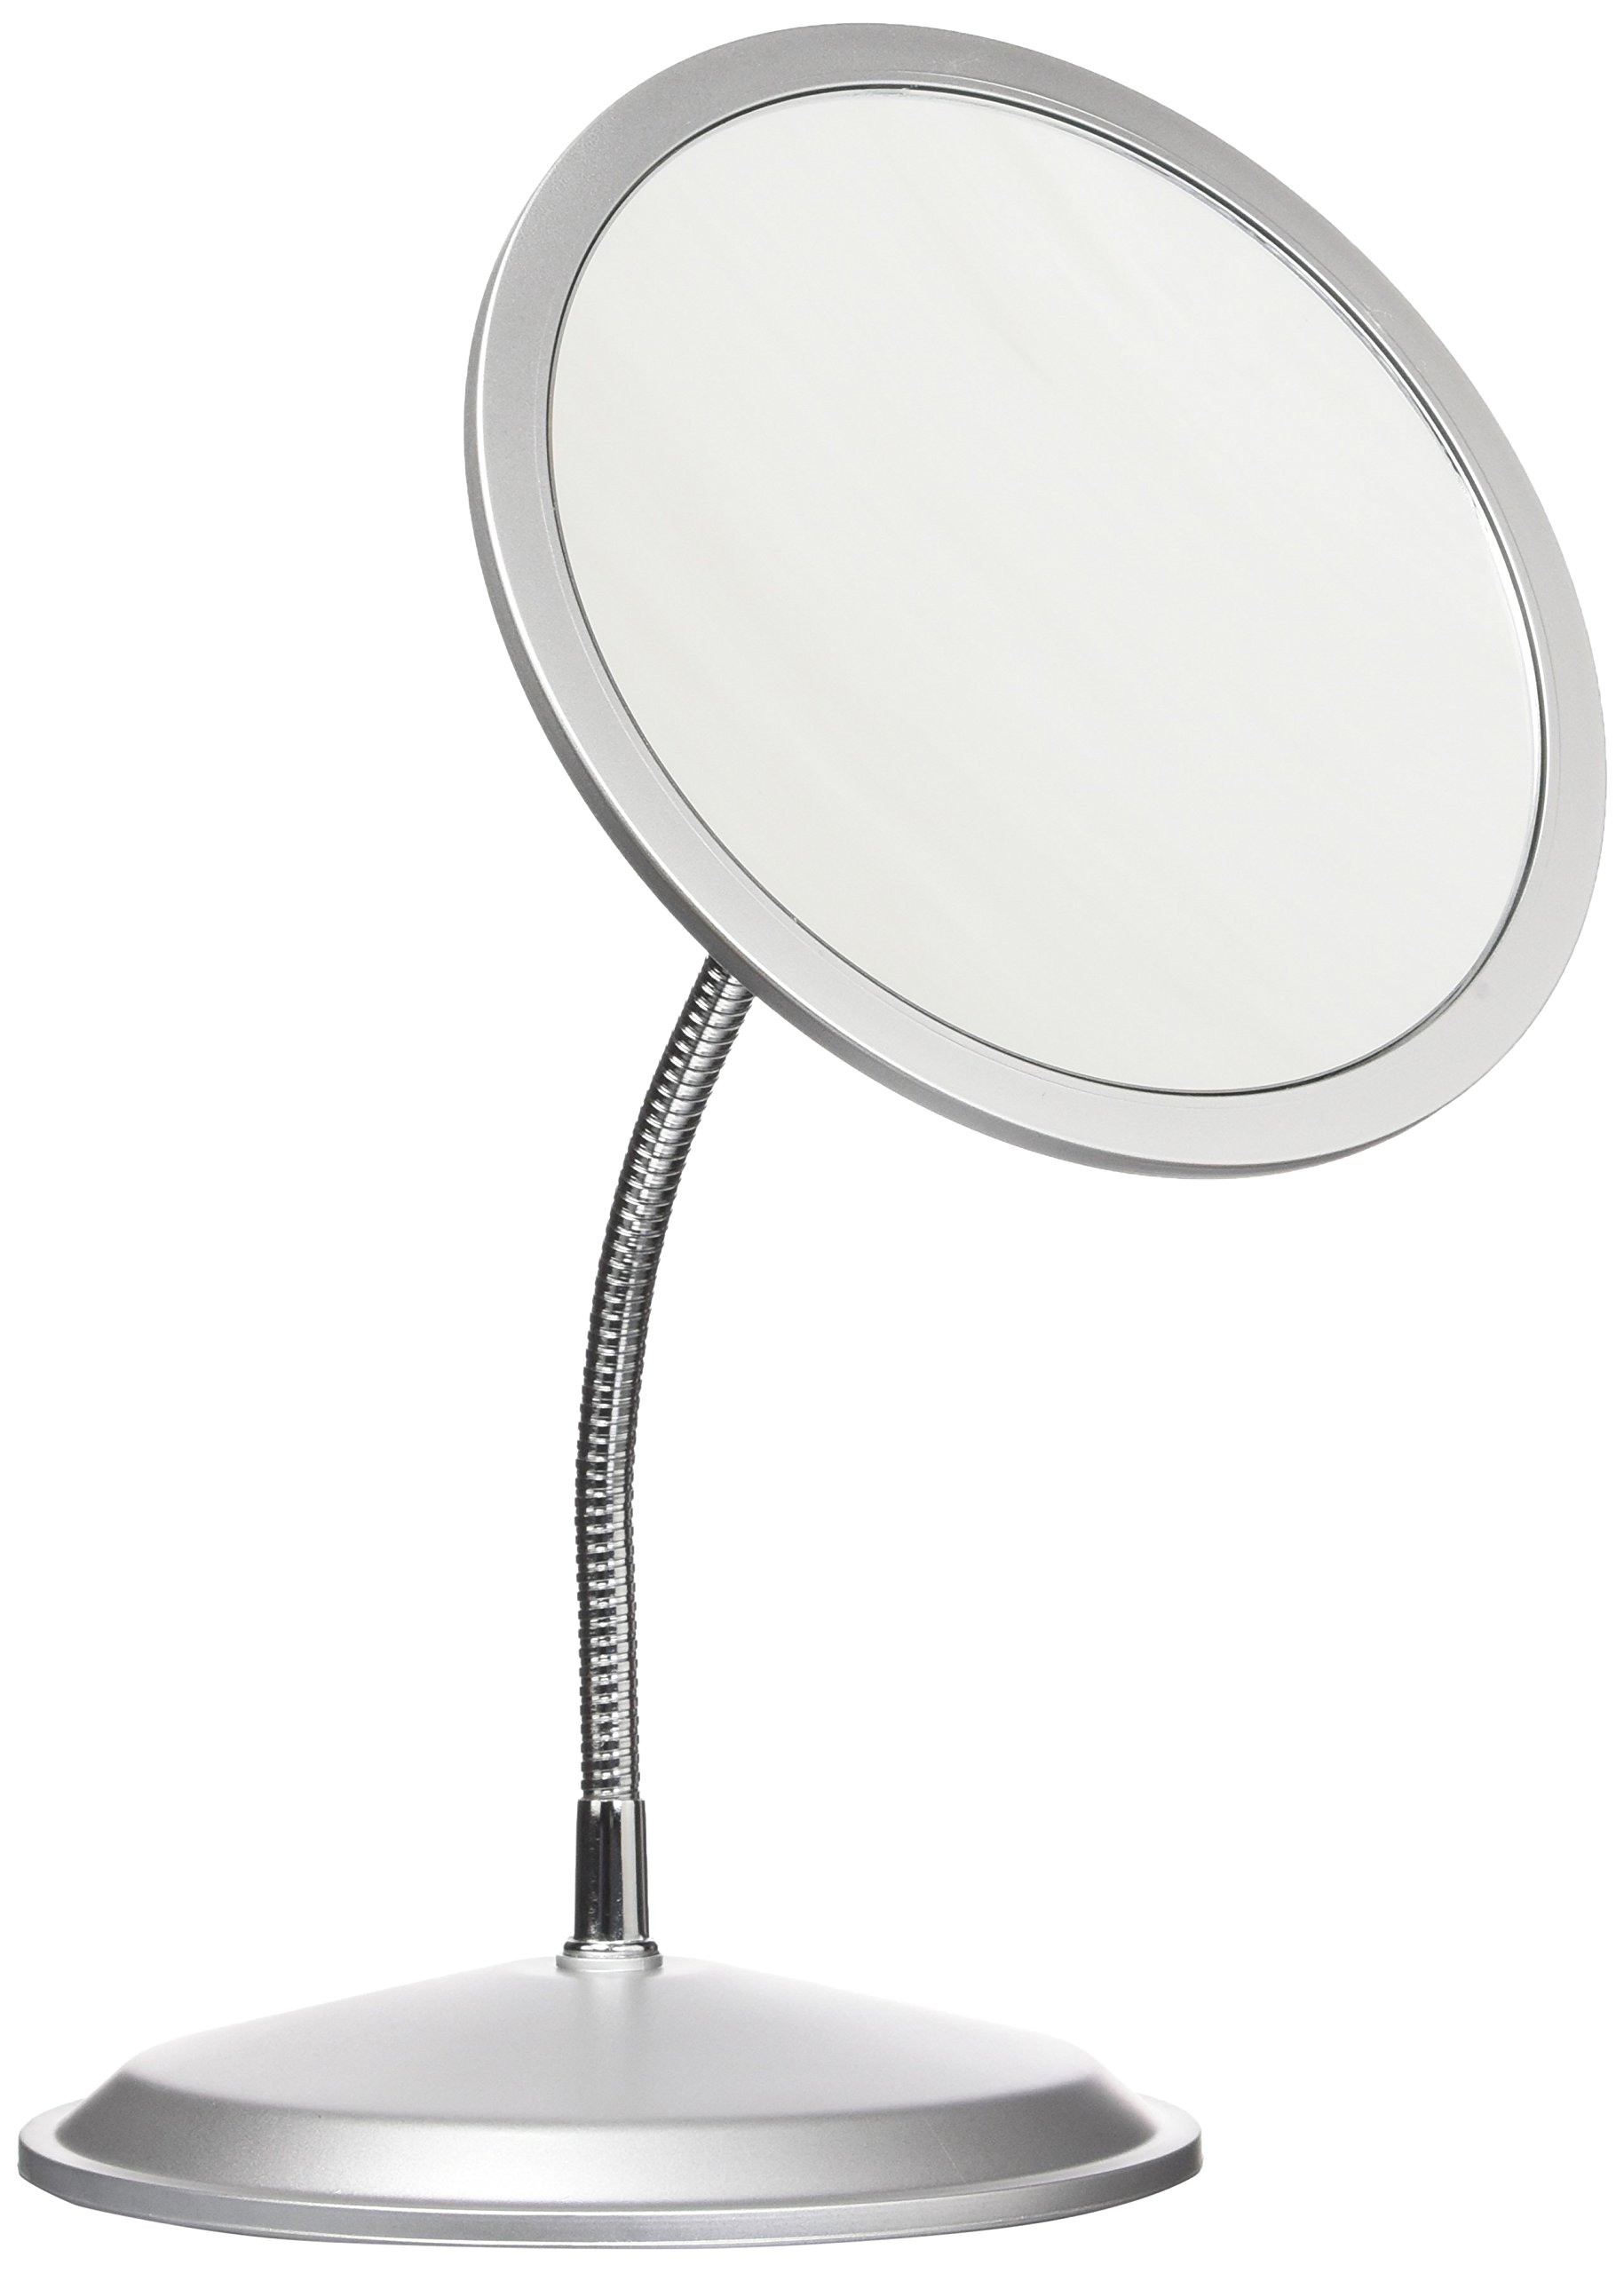 Double VisionTM Gooseneck Vanity/Wall Mount Mirror 5X/10X Magnification, Made in the USA by Zadro